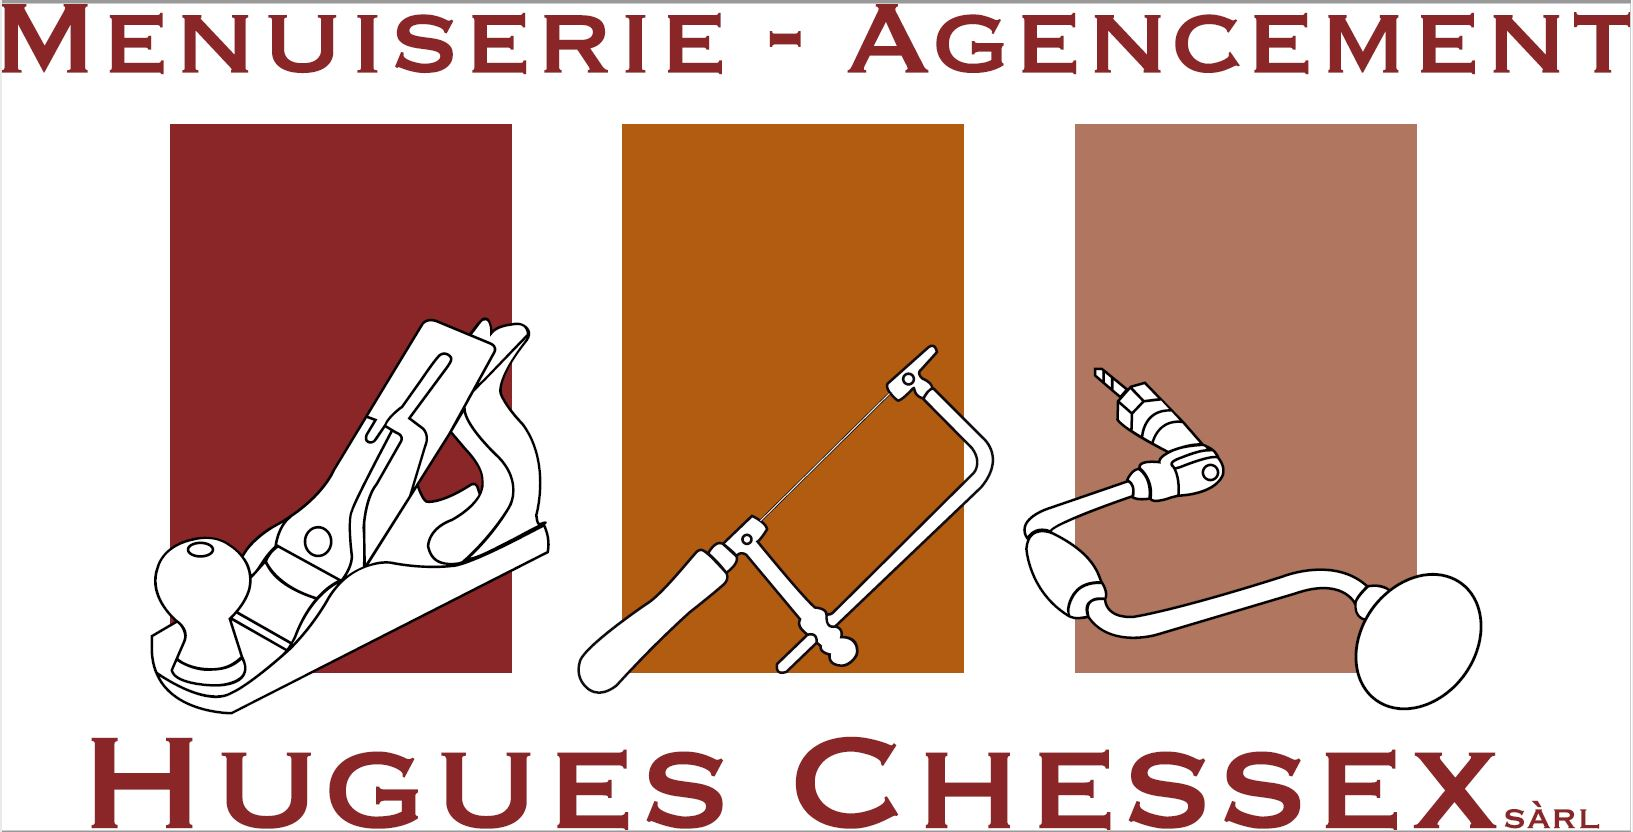 Menuiserie-Agencement Hugues Chessex Sàrl